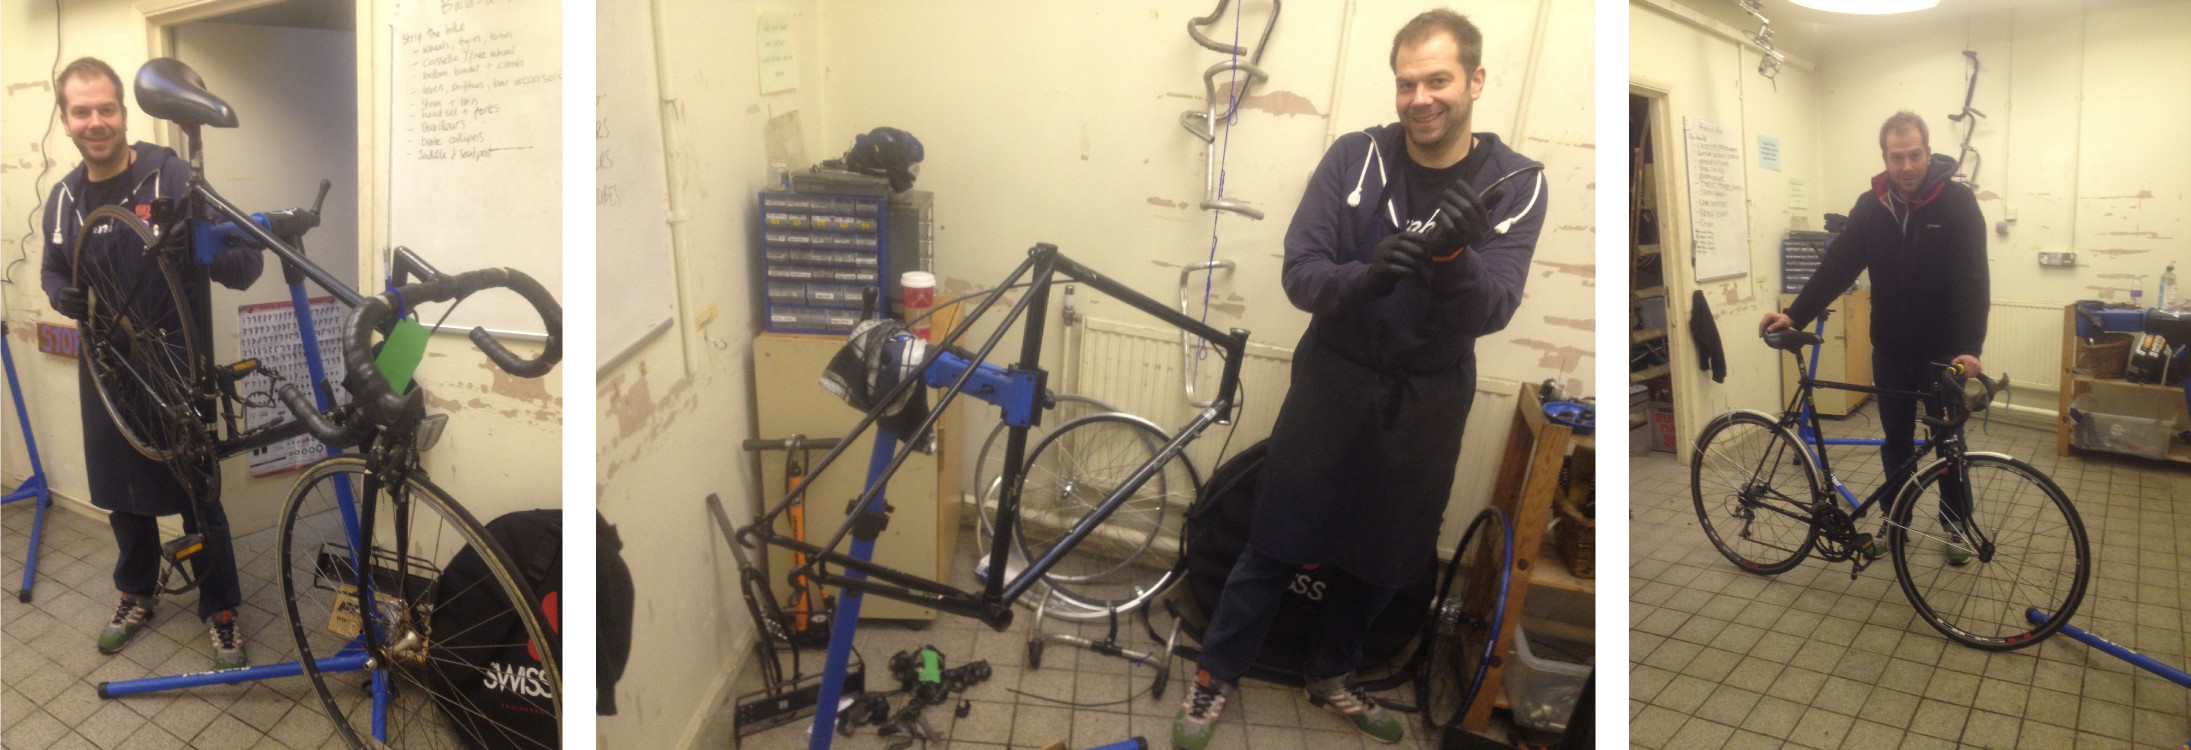 Dan build a bike